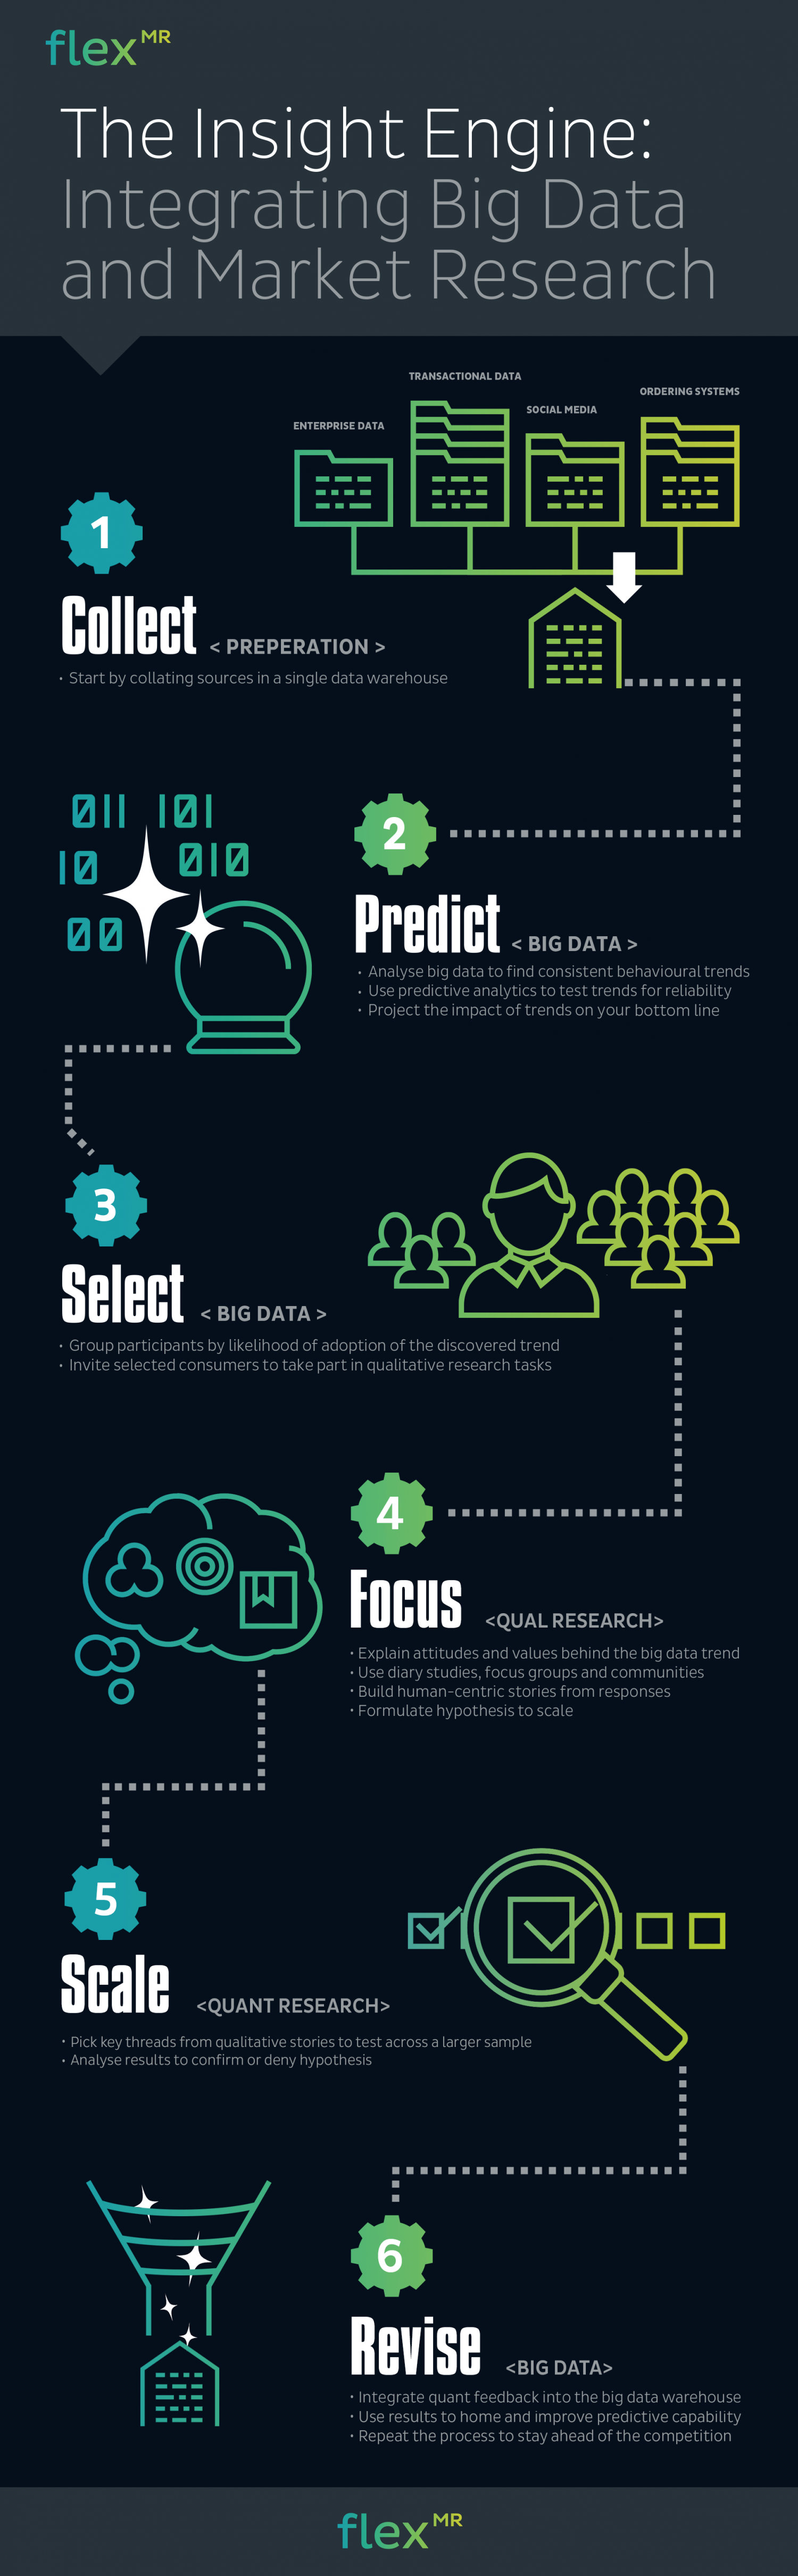 6 Steps to Integrating Big Data & Market Research Infographic